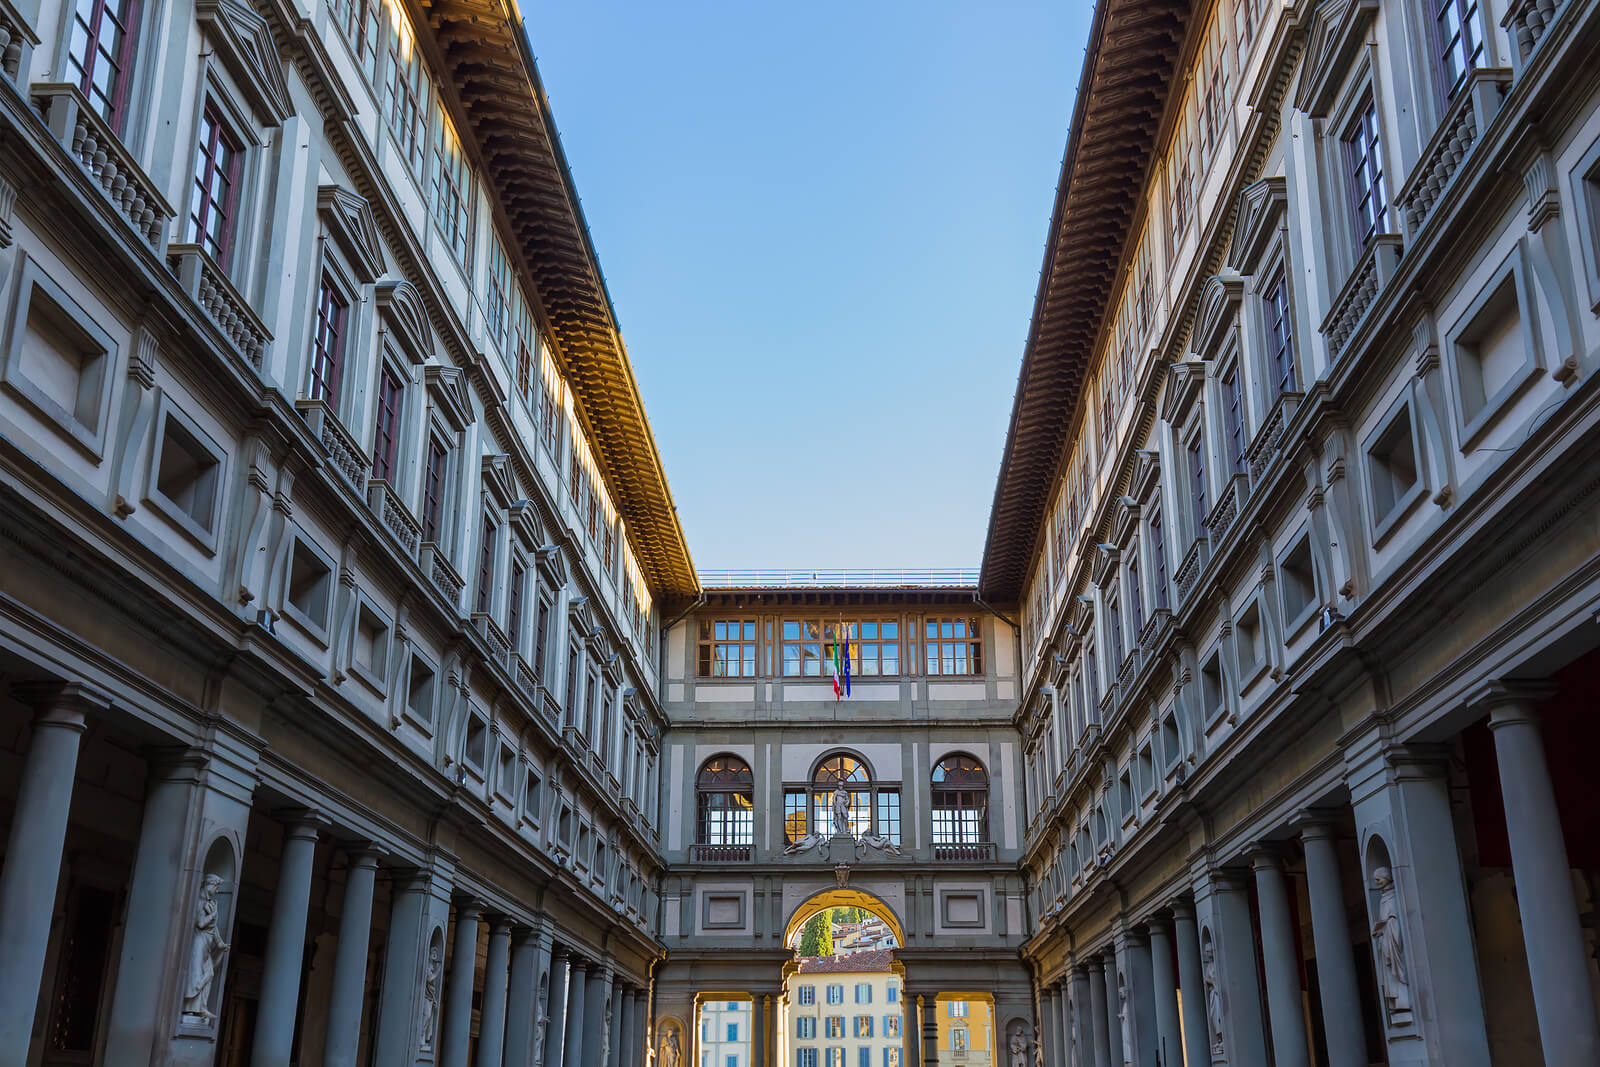 Exterior of Uffizi Gallery in Florence